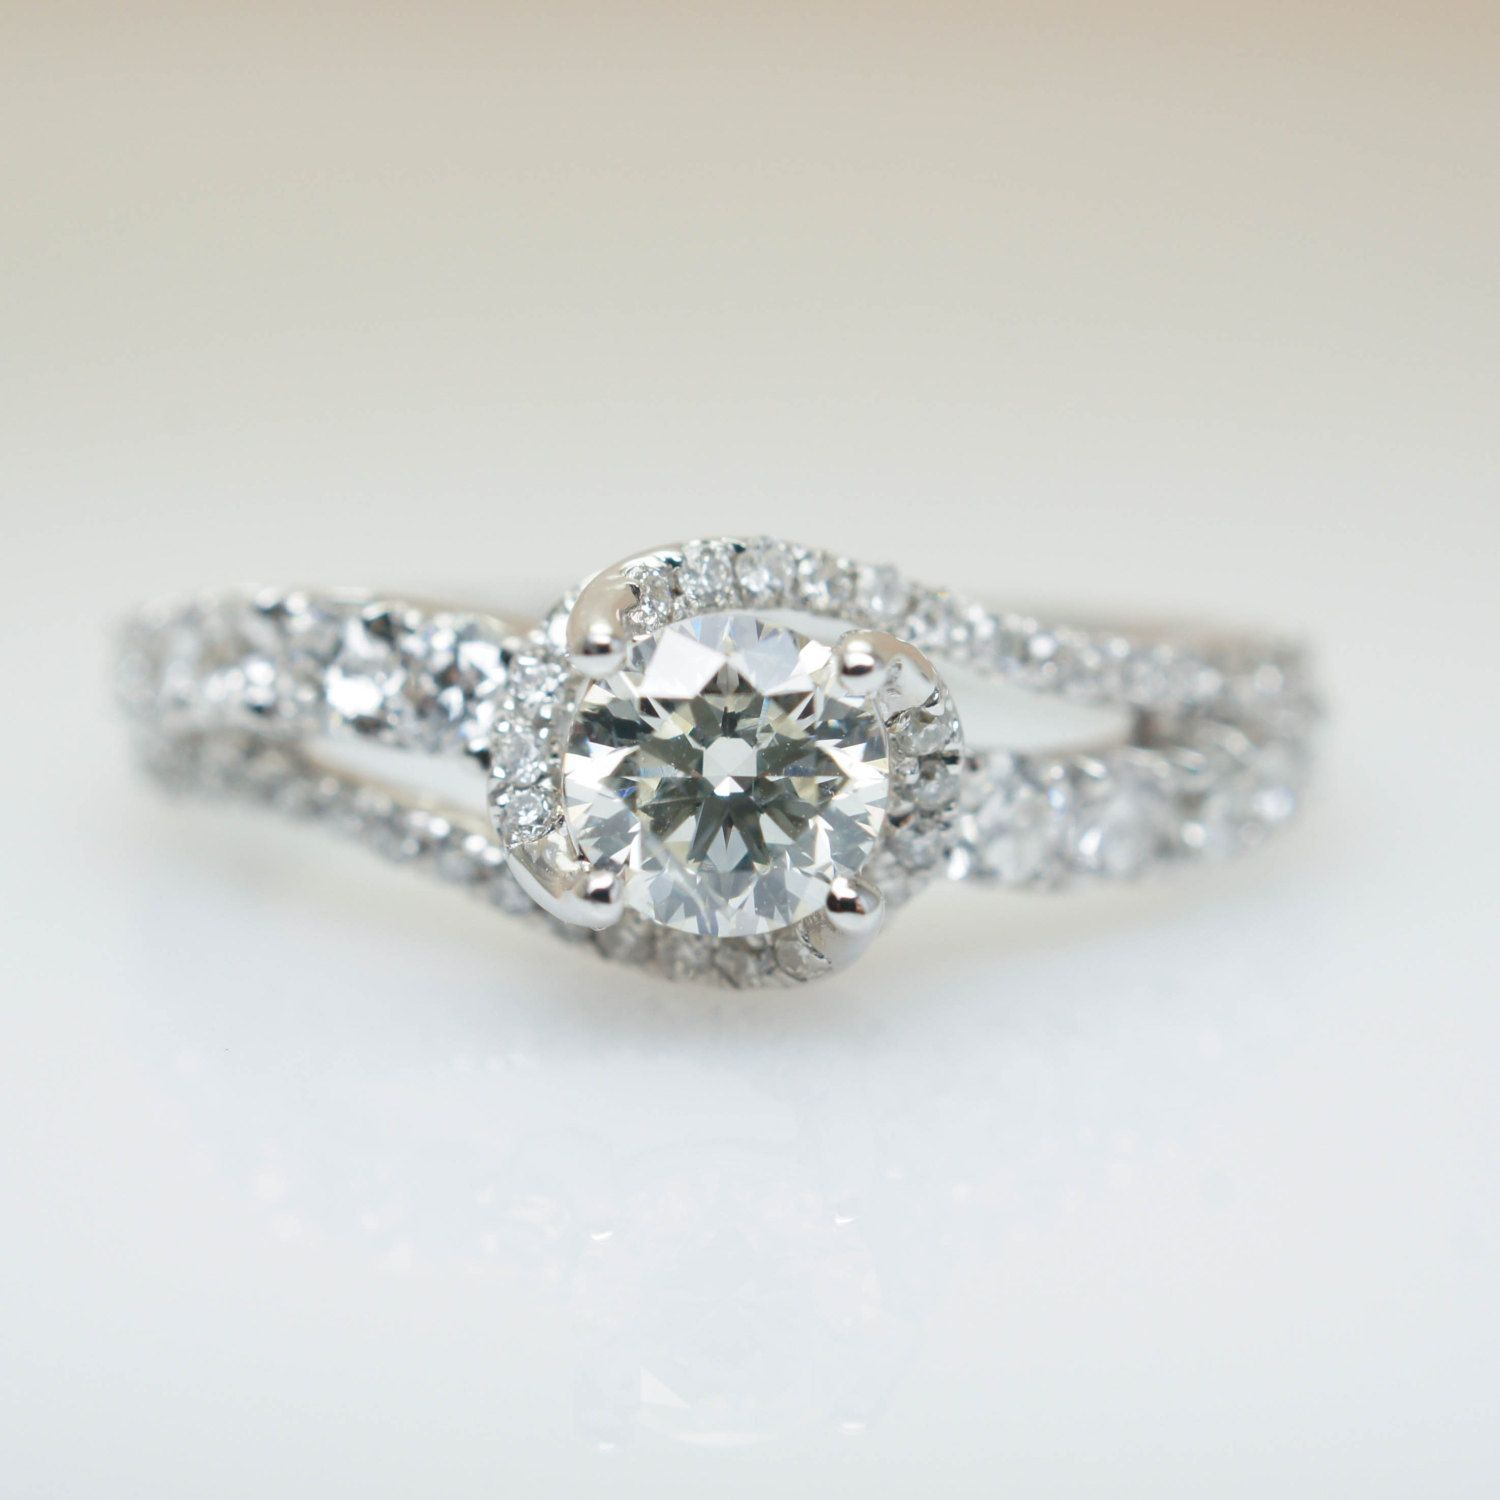 Beautiful Intricate Swirl Diamond Engagement Ring 14k White Gold Wedding  Jewelry Open Weave Delicate Engagement Ring